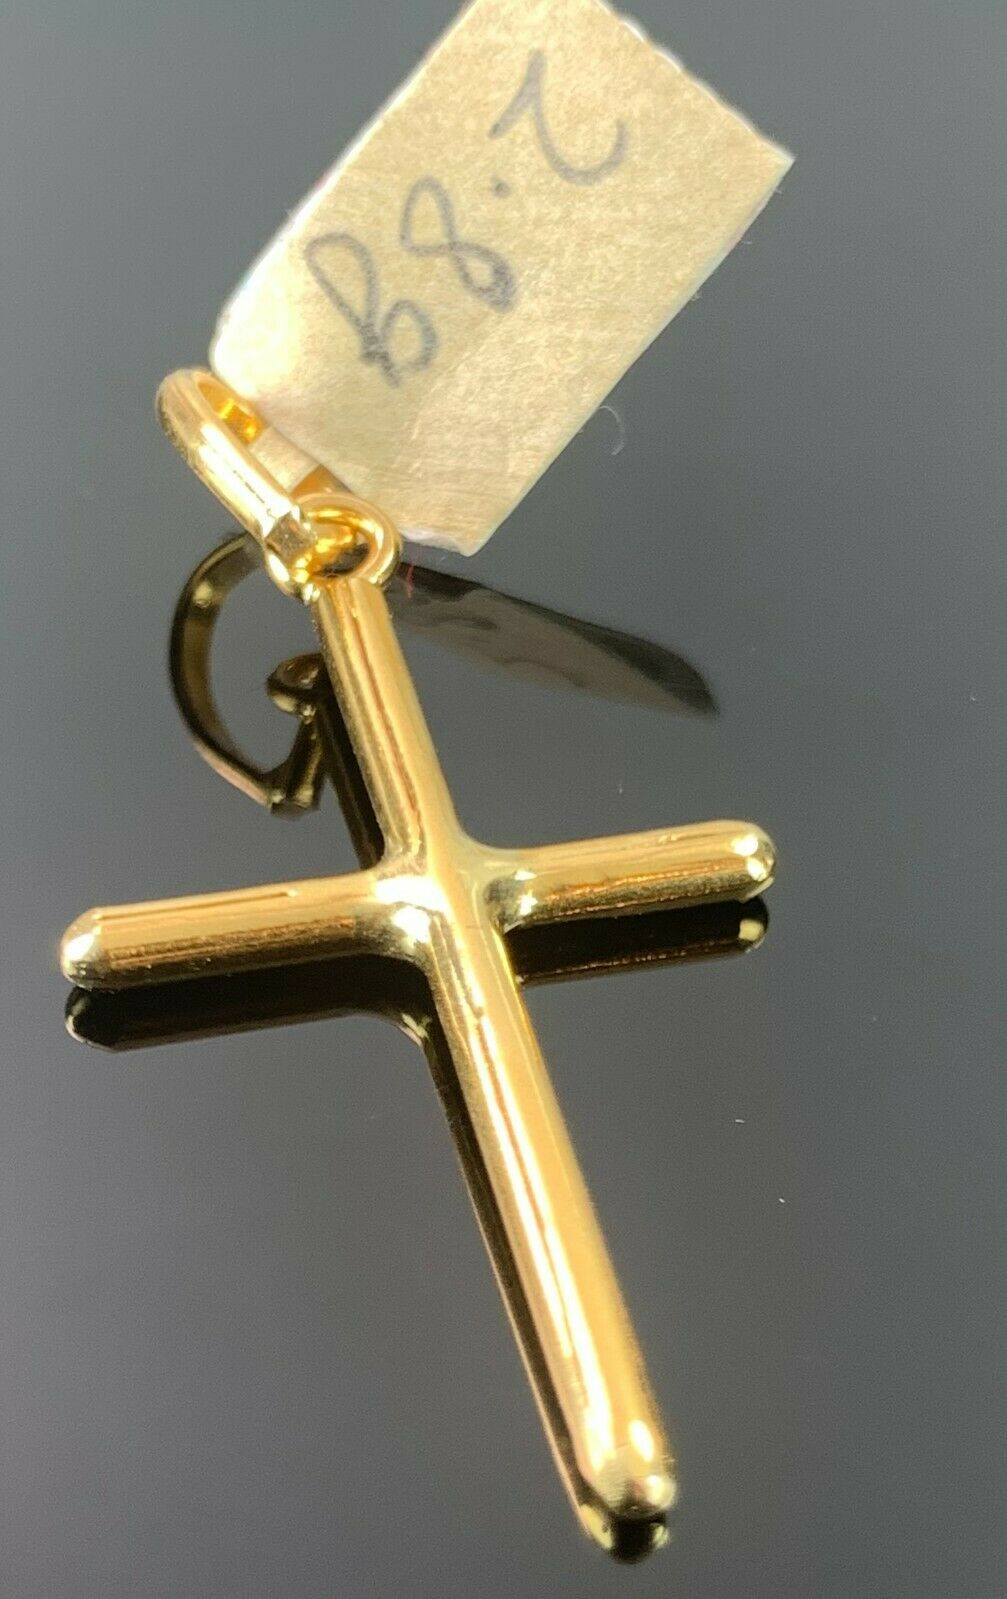 22k Pendant Solid Gold Elegant Simple Cross High Polished Glossy Design P444 - Royal Dubai Jewellers